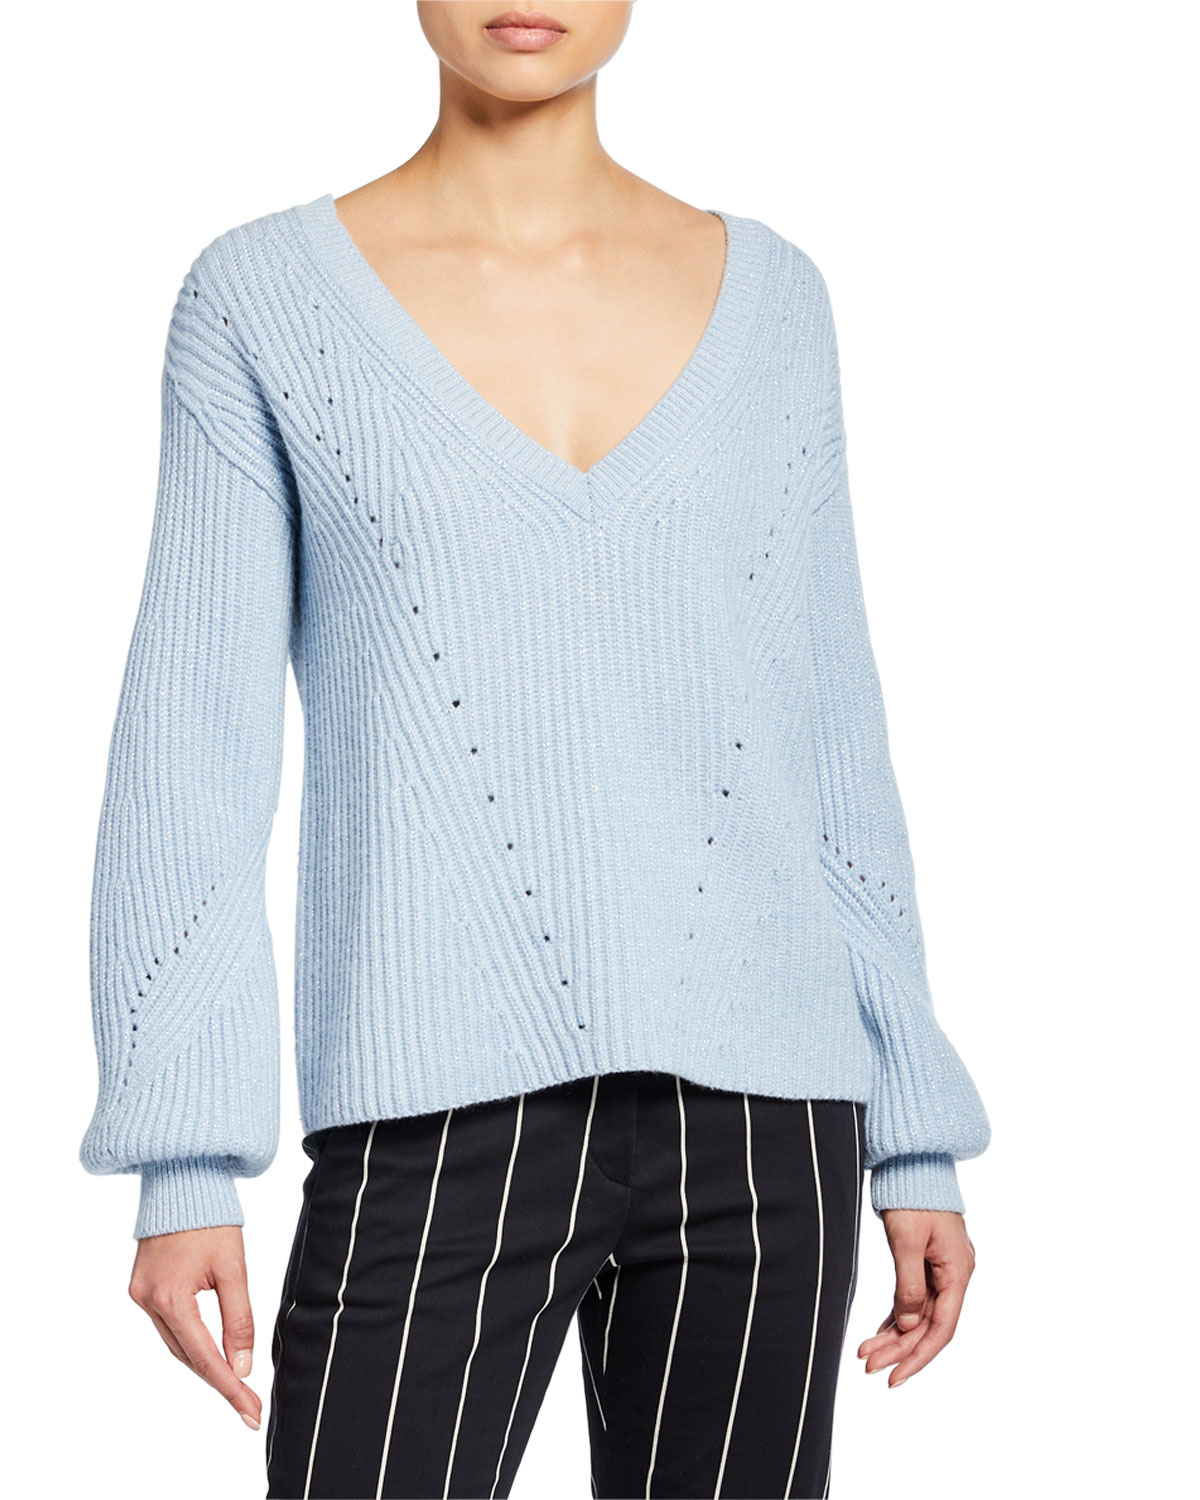 Derek Lam 10 Crosby Ribbed V-Neck Sweater